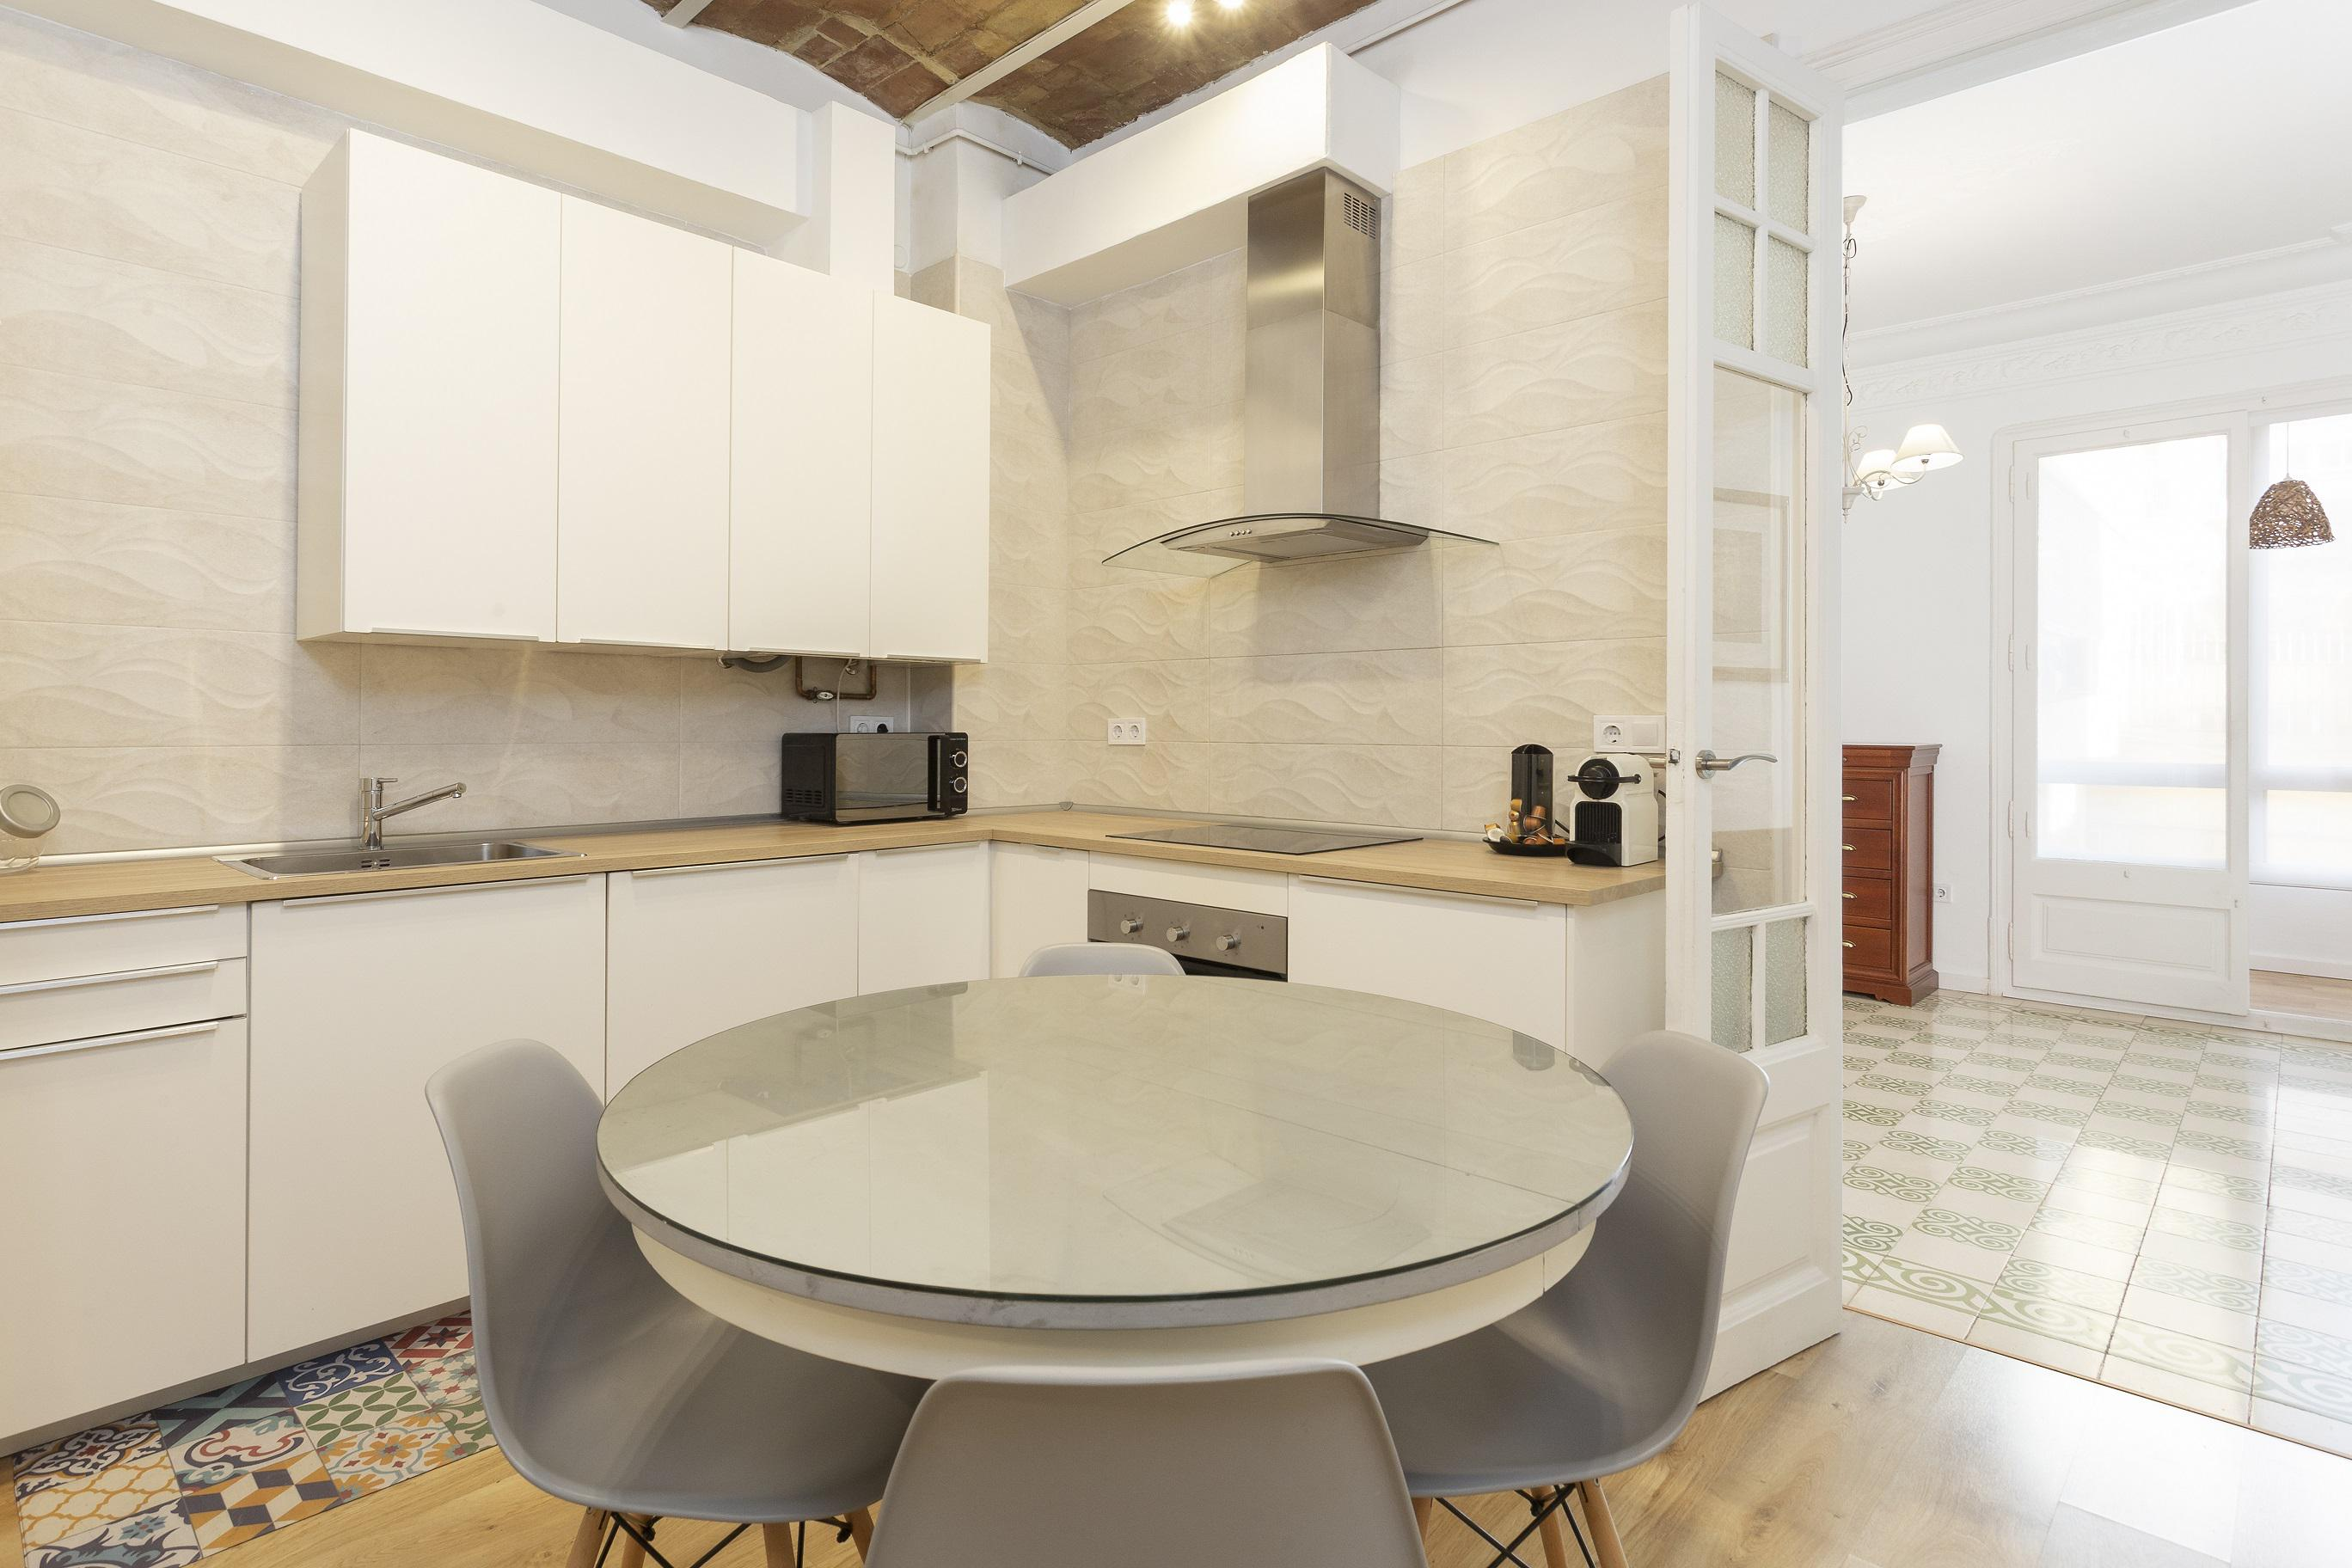 236190 Apartment for sale in Eixample, Old Left Eixample 9